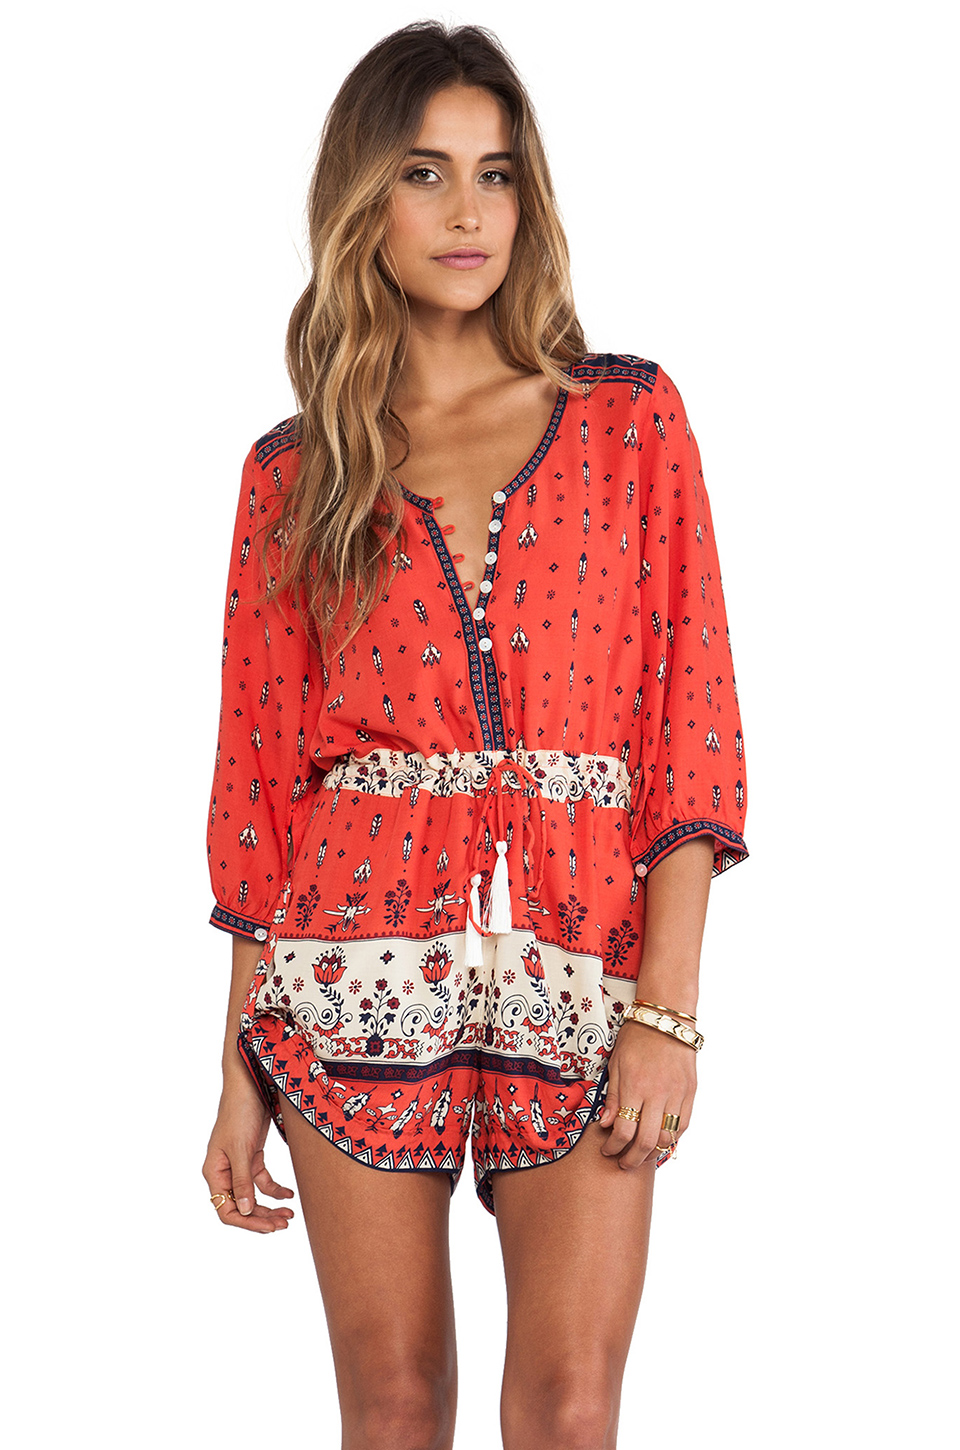 Spell & the gypsy collective desert wanderer playsuit in sunset from revolveclothing.com